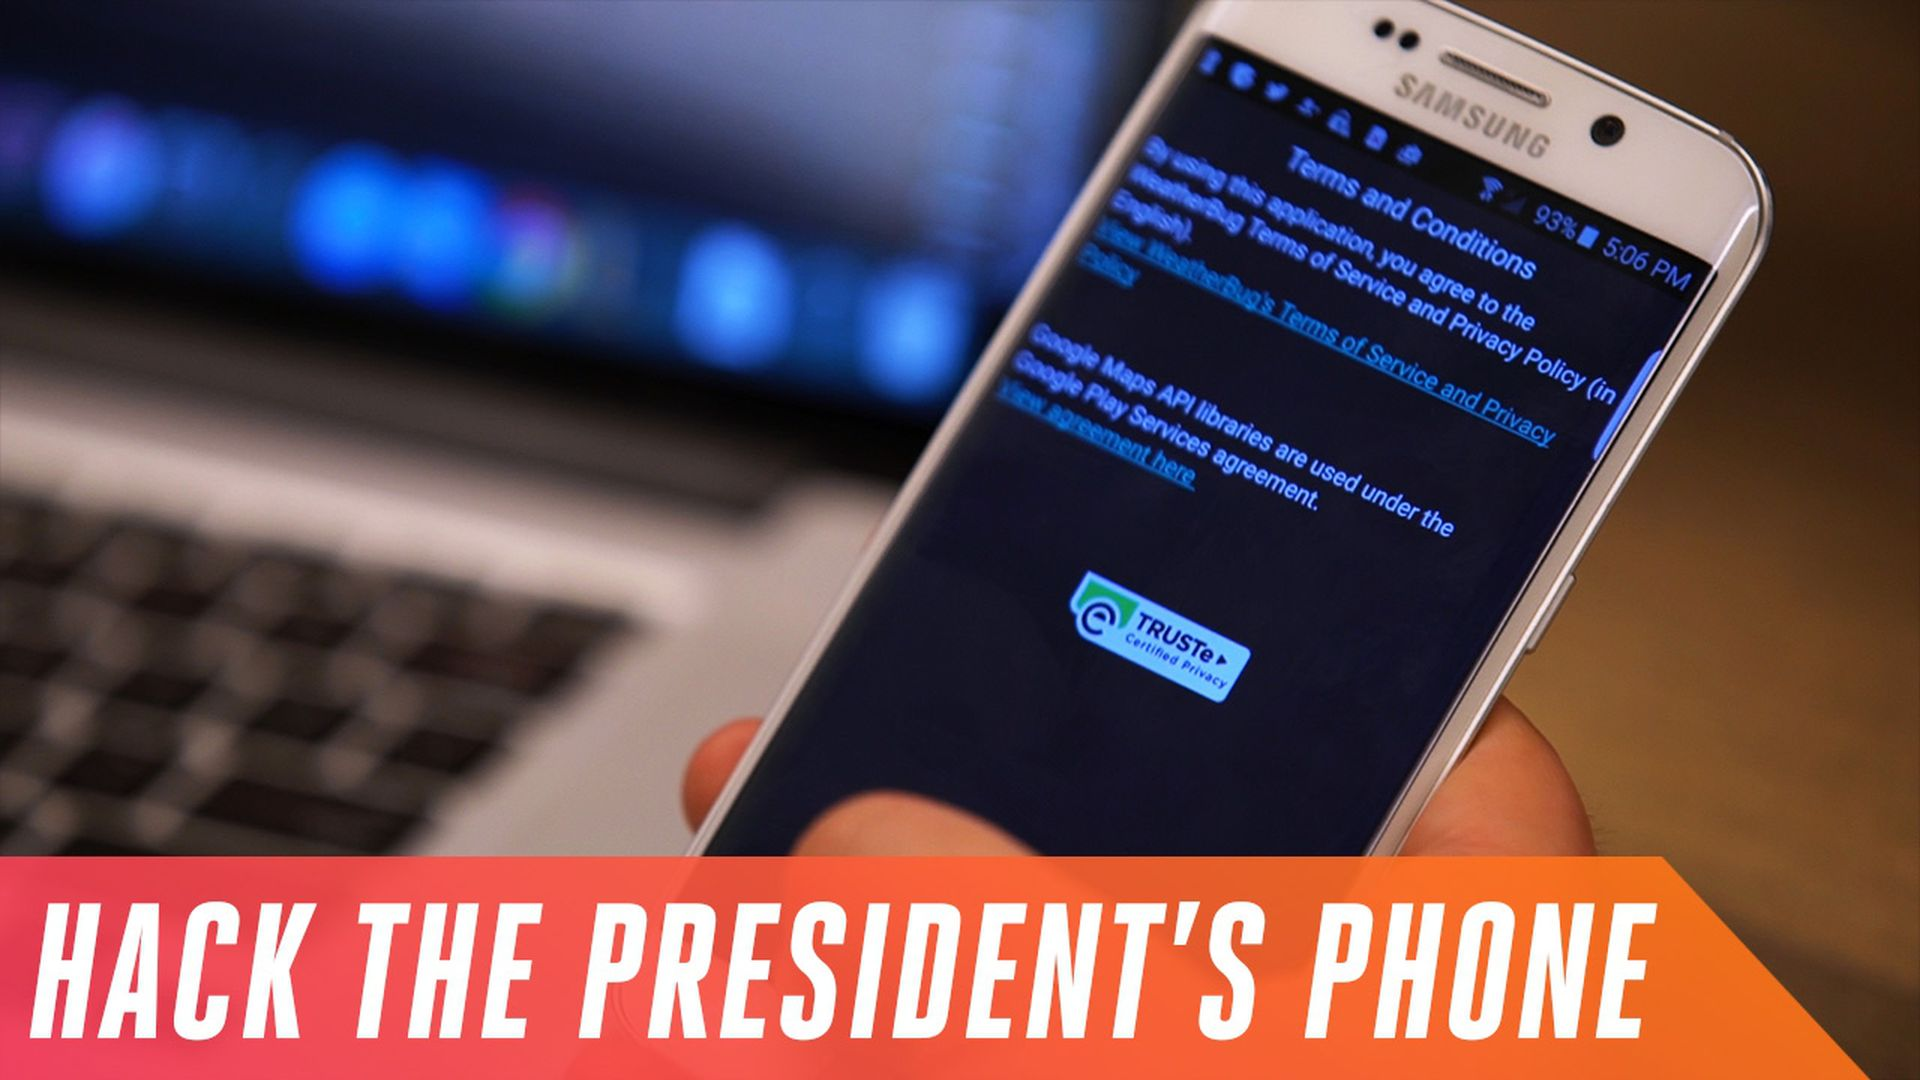 Here's how easy it is to hack Donald Trump's phone - The Verge